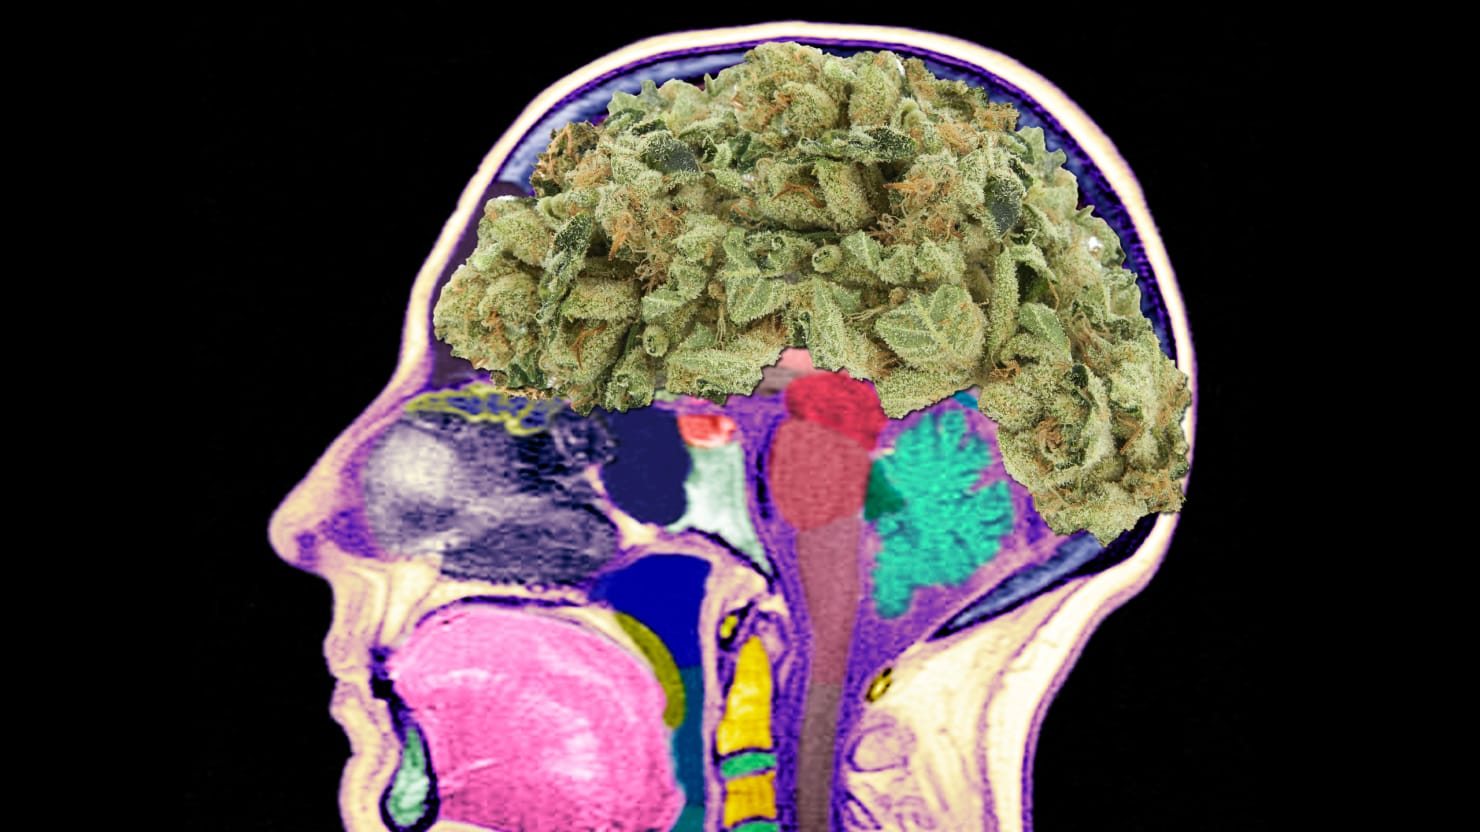 Brain study connects cannabis, oxygen changes - Medical Xpress